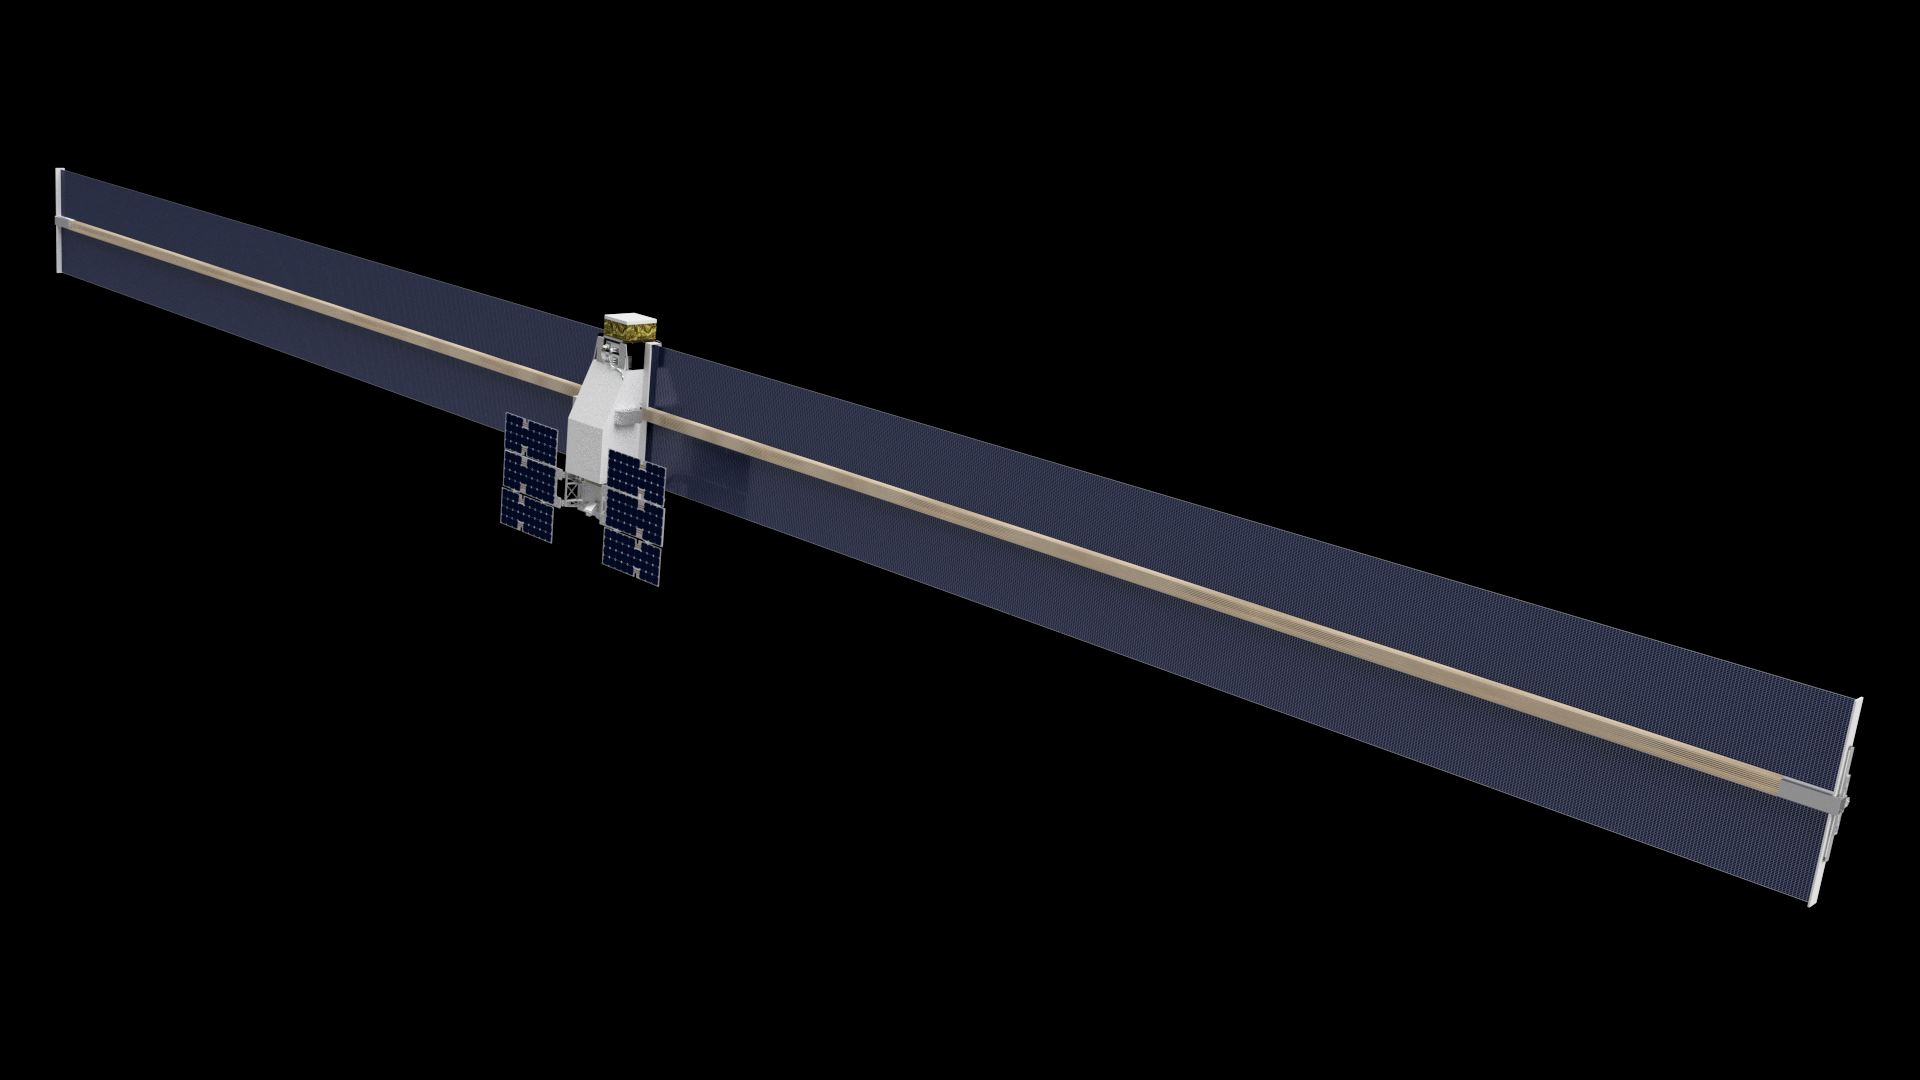 NASA Funds Demo of 3D-Printed Spacecraft Parts Made, Assembled in Orbit